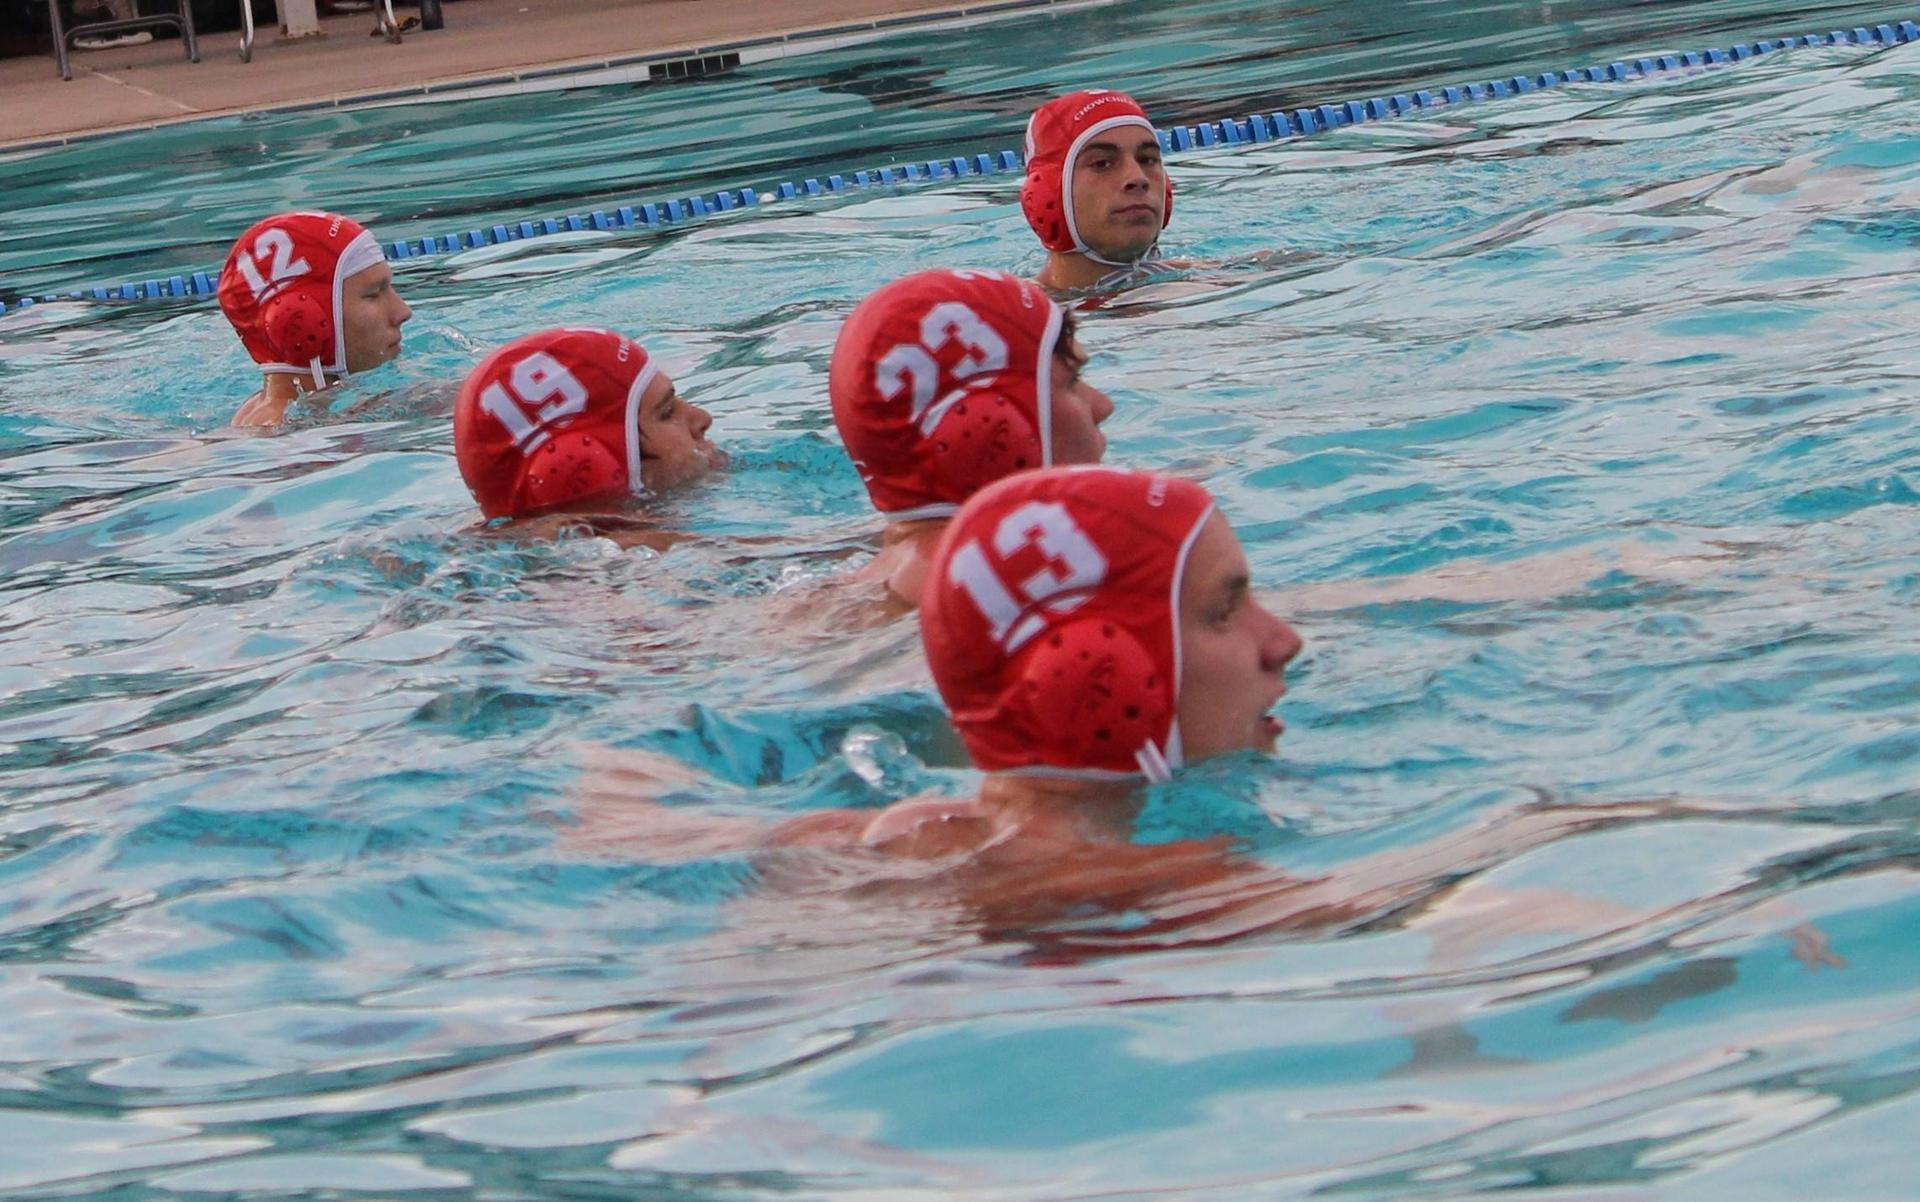 Boys playing water polo against Yosemite.